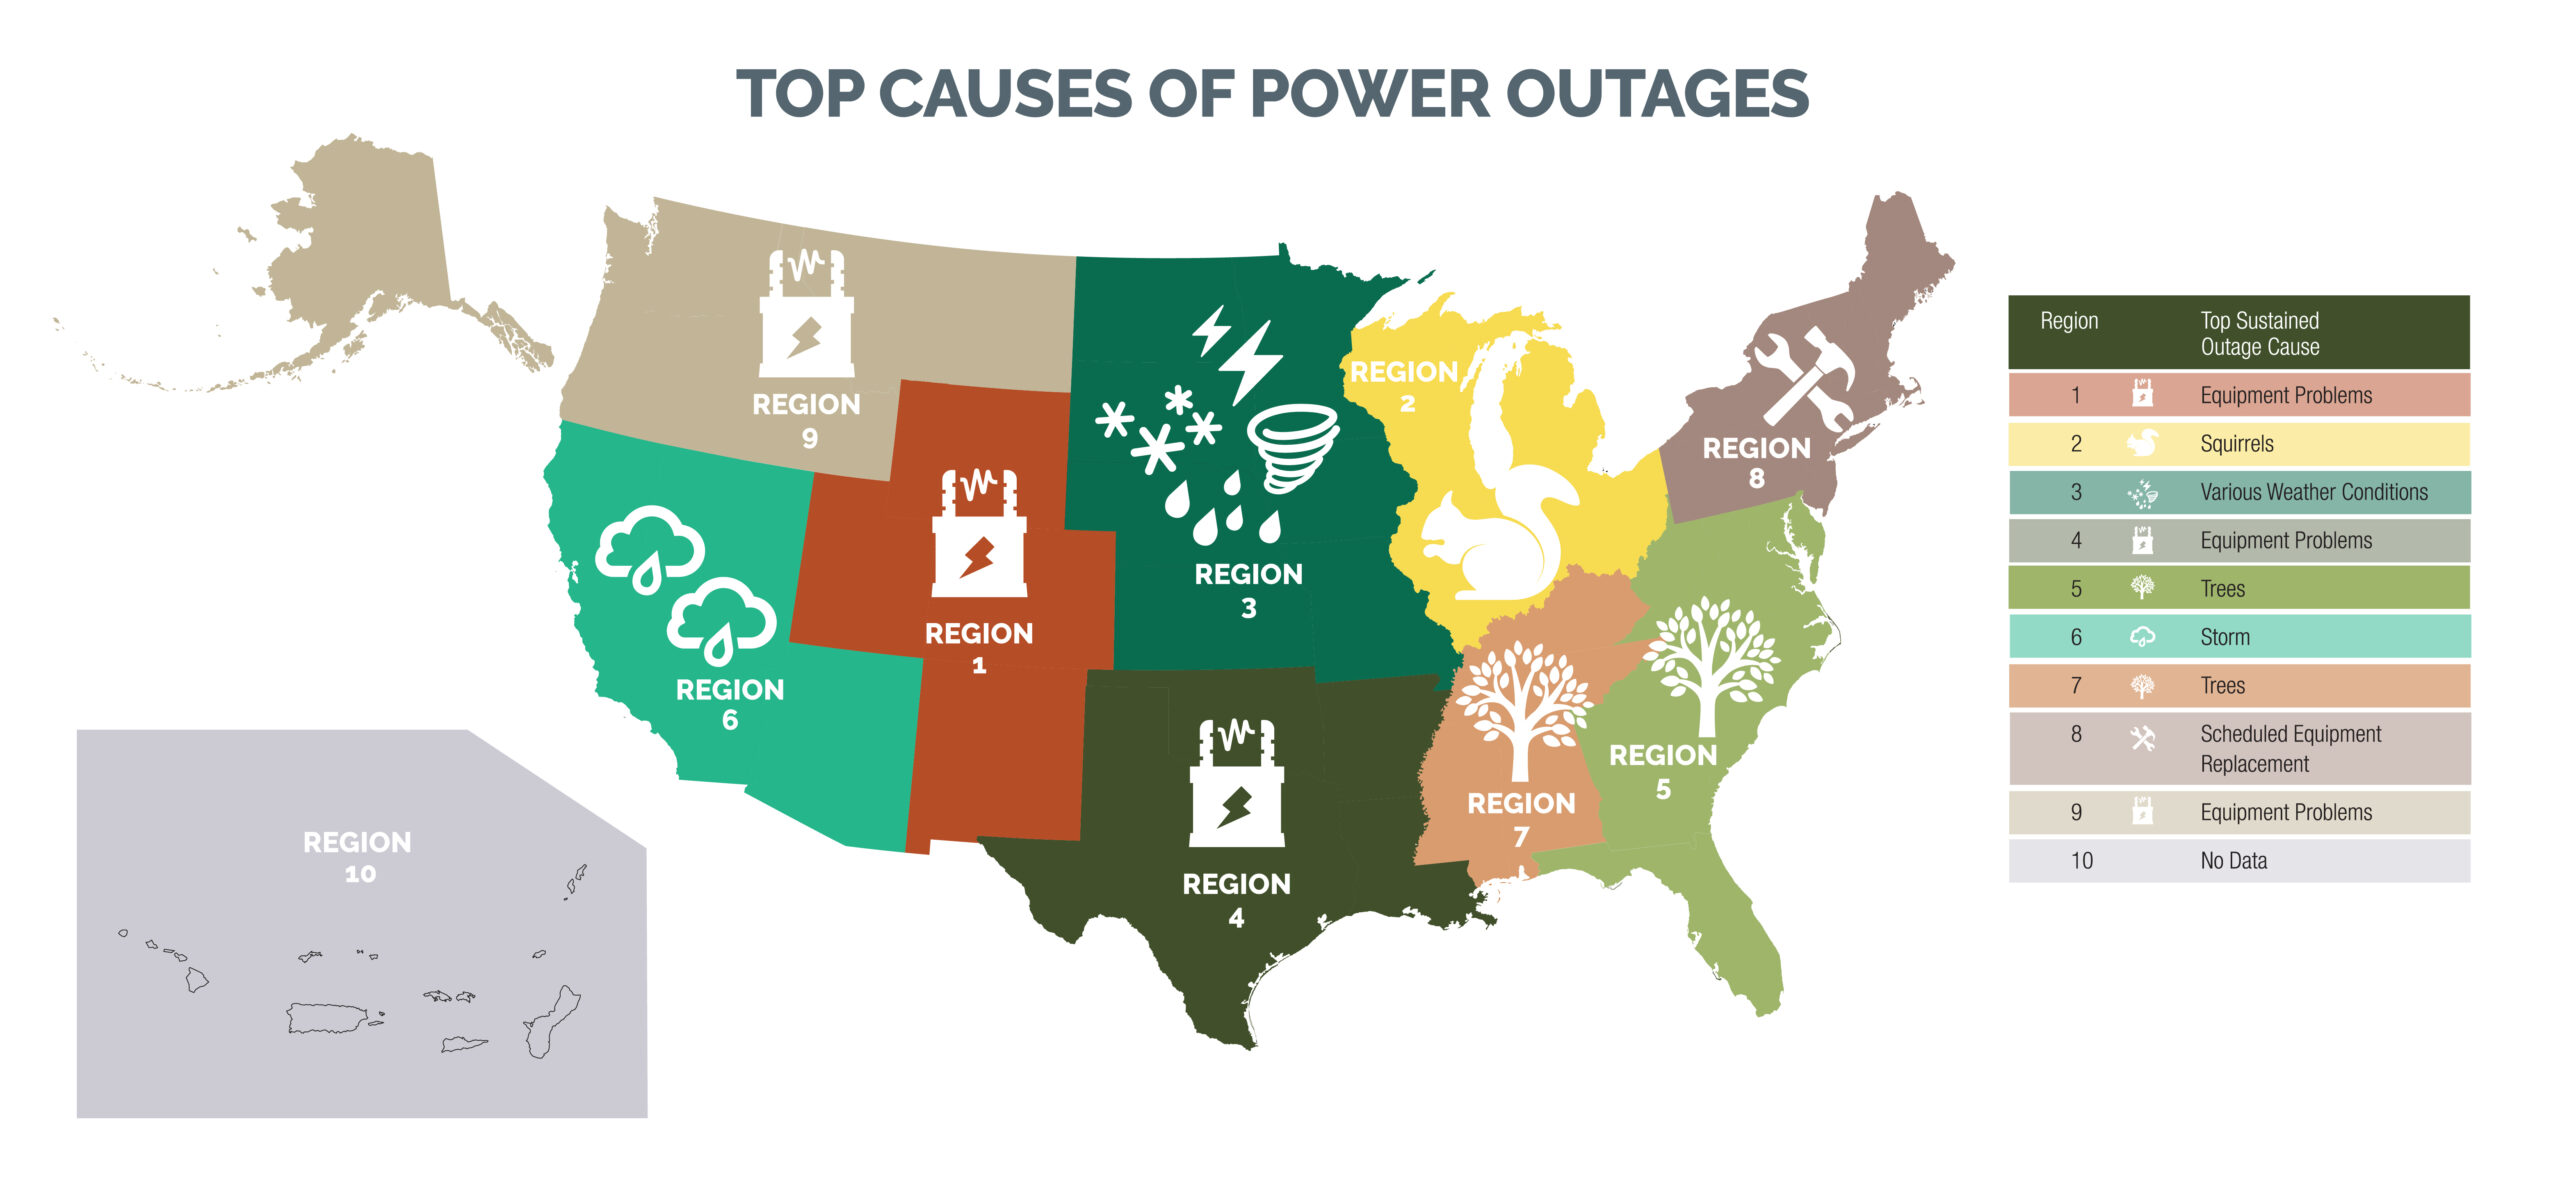 Top Causes of Power Outages by Region. Provided by The American Public Power Association